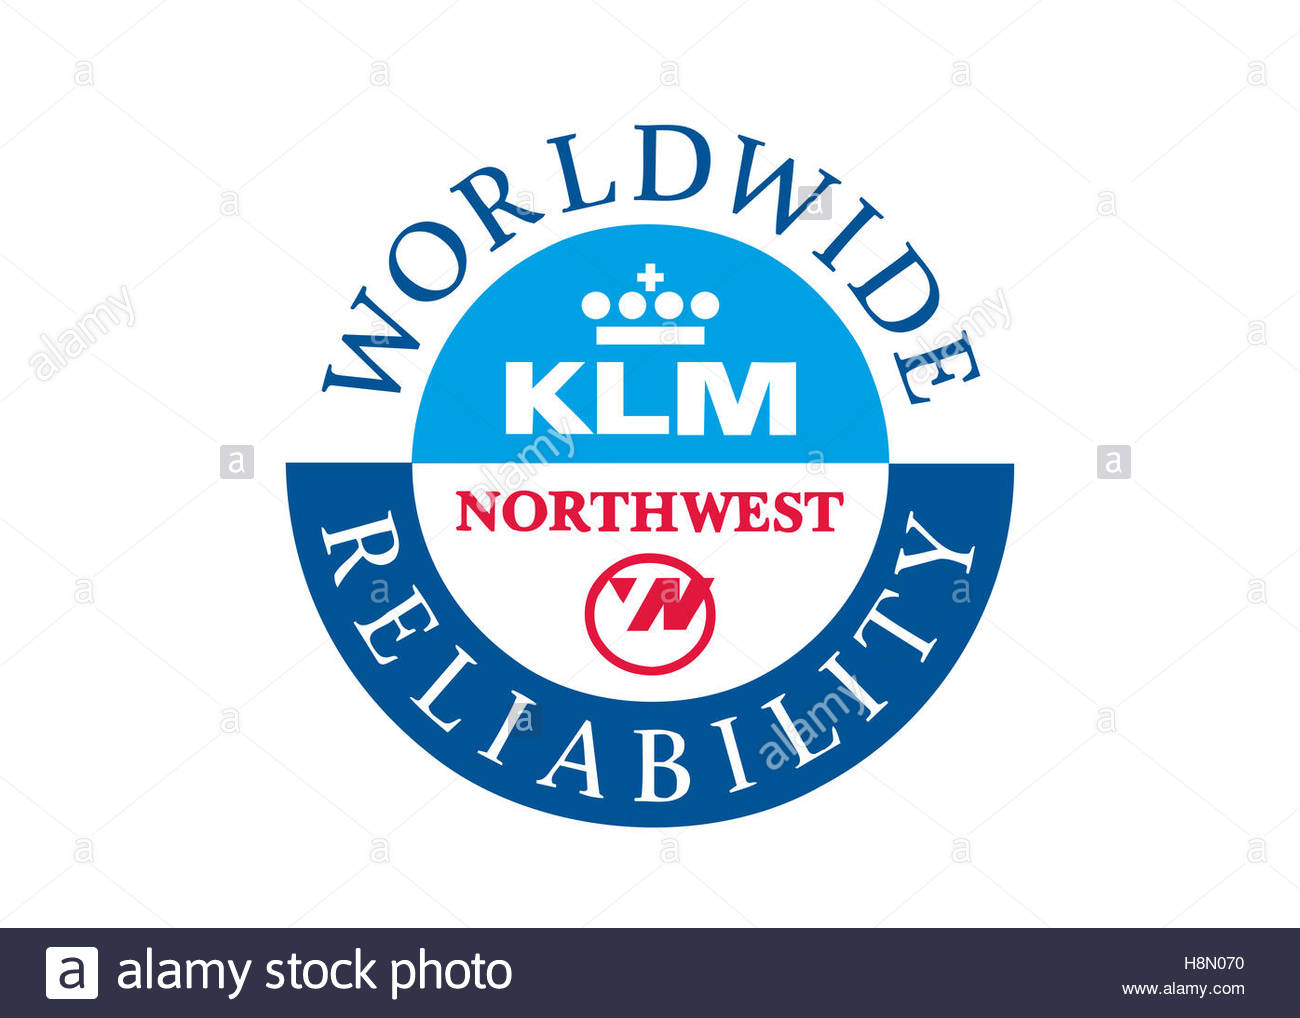 Klm northwest airlines logo stock photo 125851012 alamy klm northwest airlines logo biocorpaavc Image collections